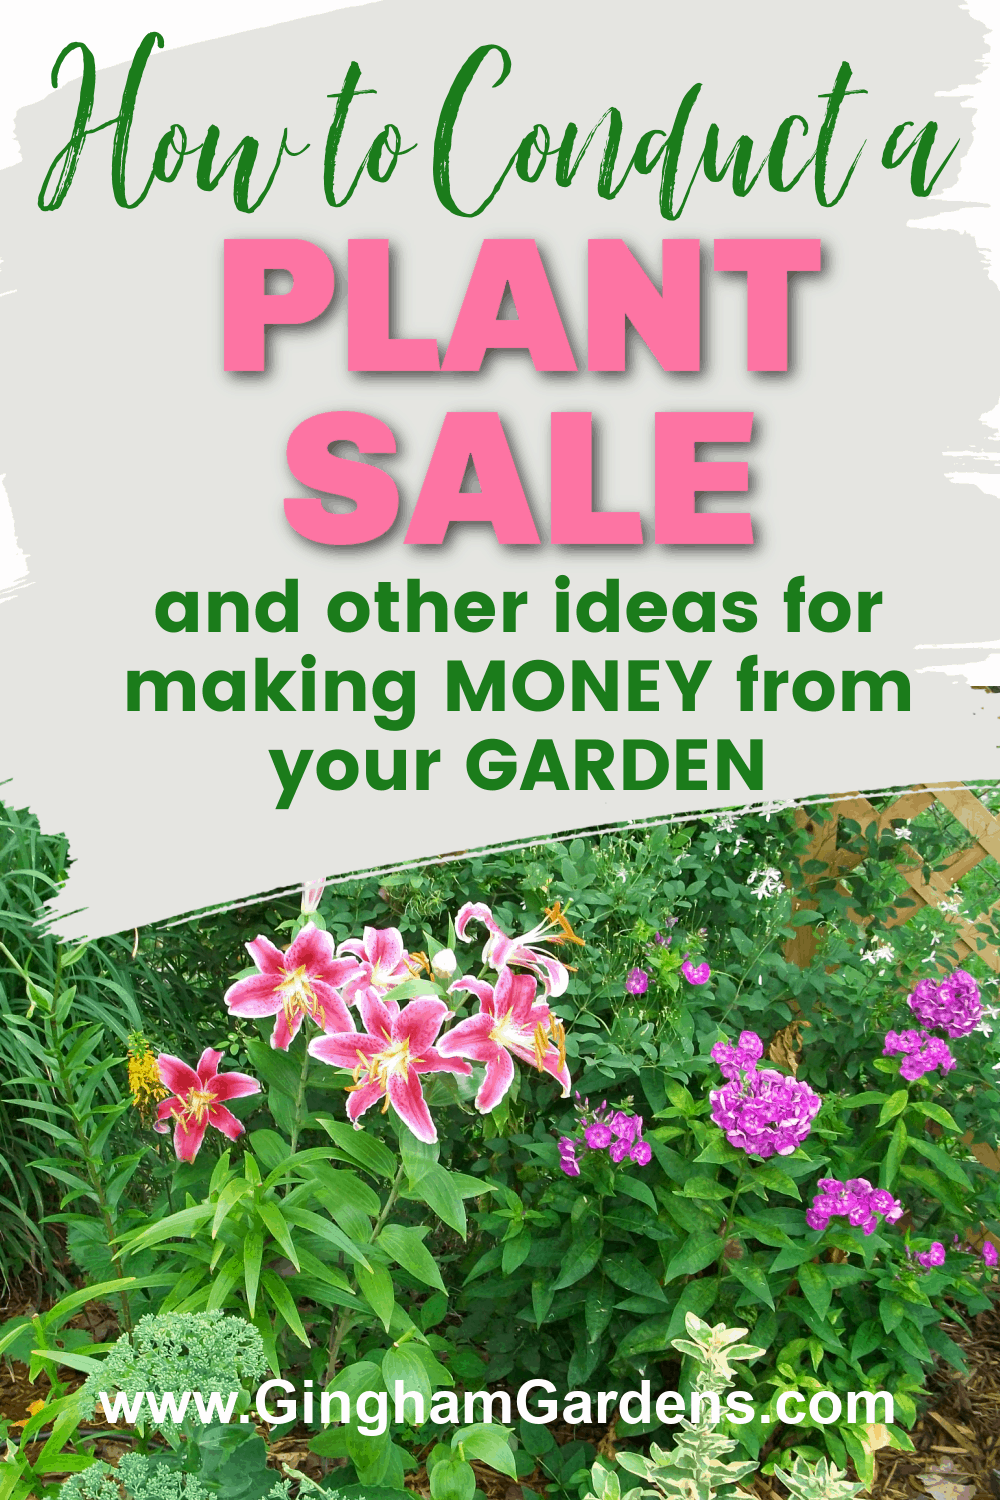 Image of a Flower Garden with Text Overlay - How to Conduct a Plant Sale